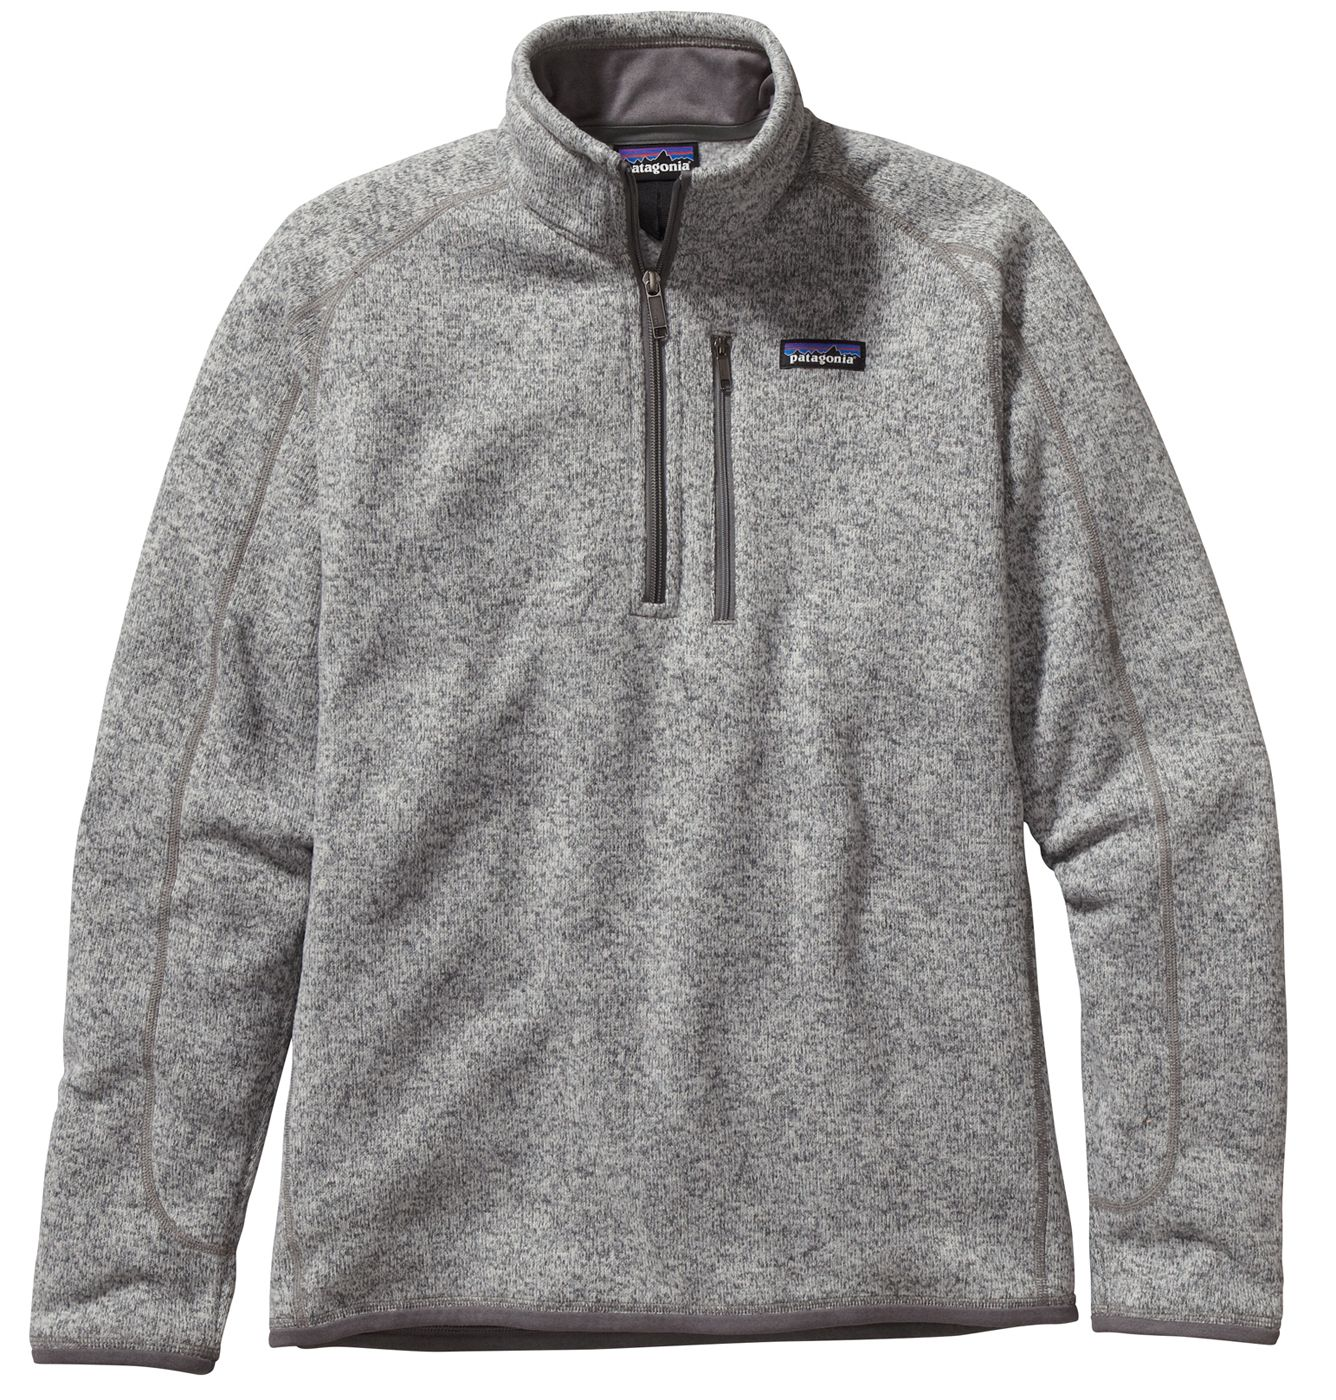 Explore Patagonia Better Sweater and more! patagonia jackets mens ...